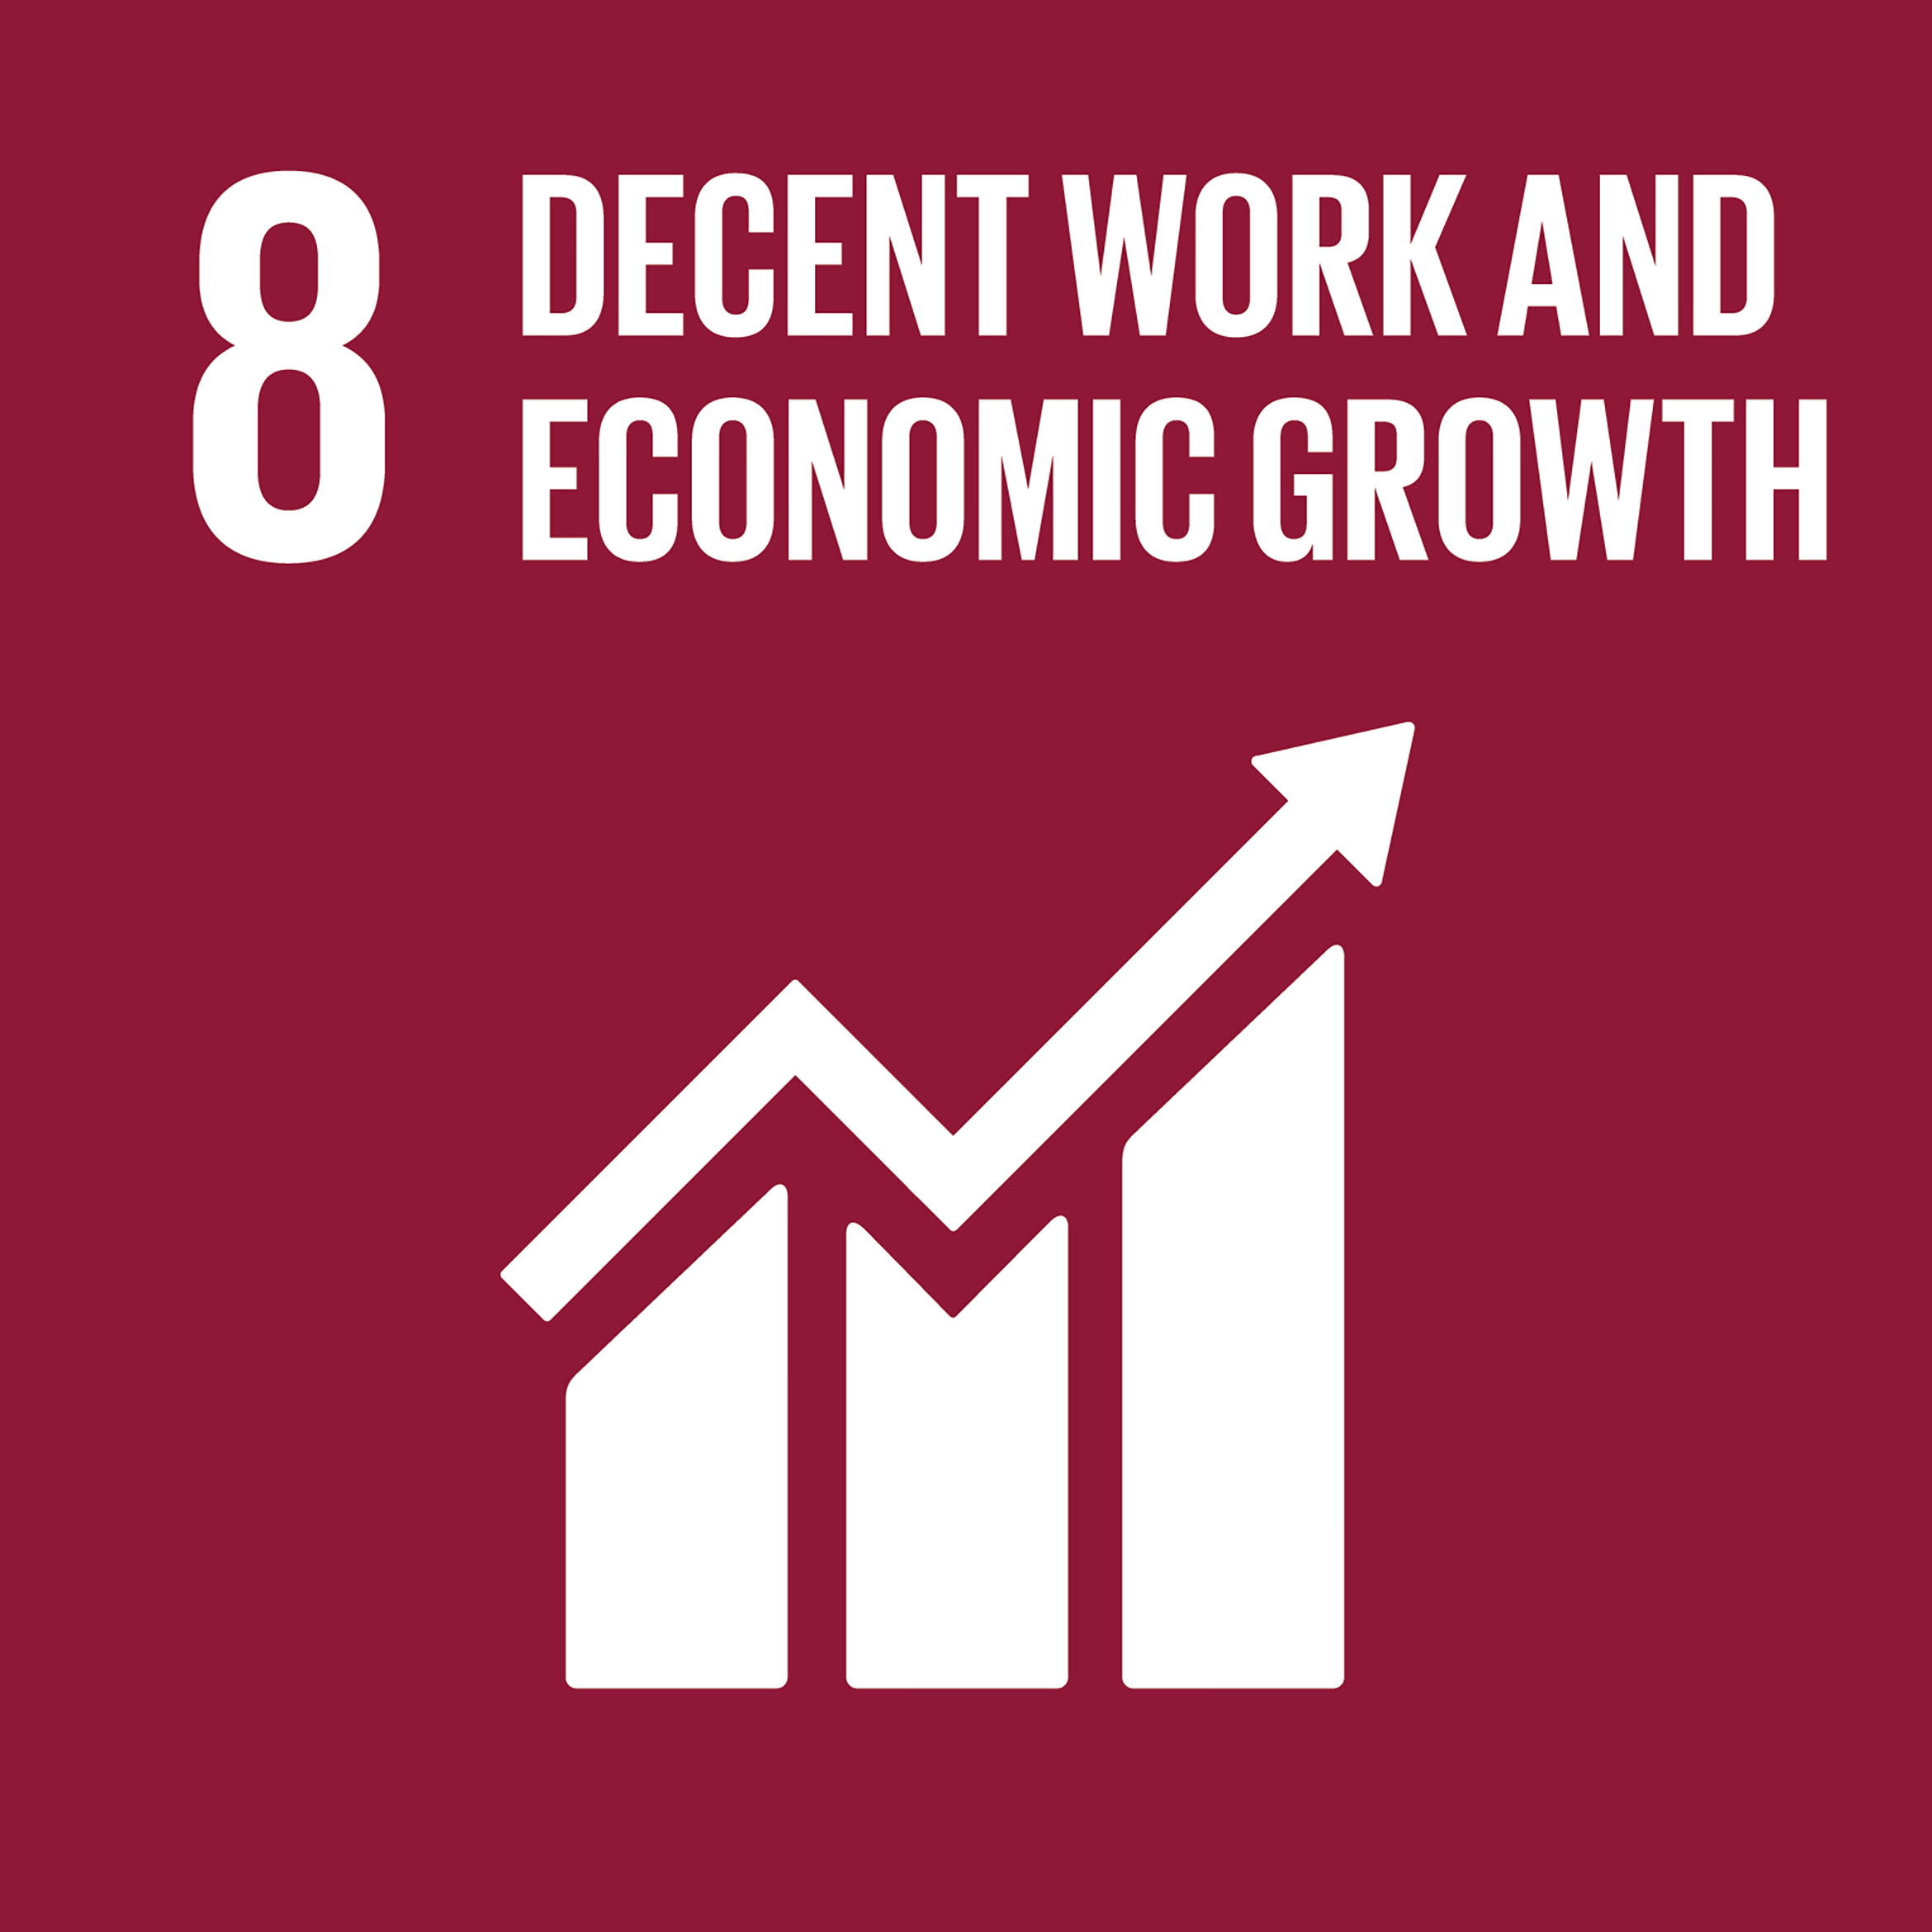 SDG-decent-work-economic-growth